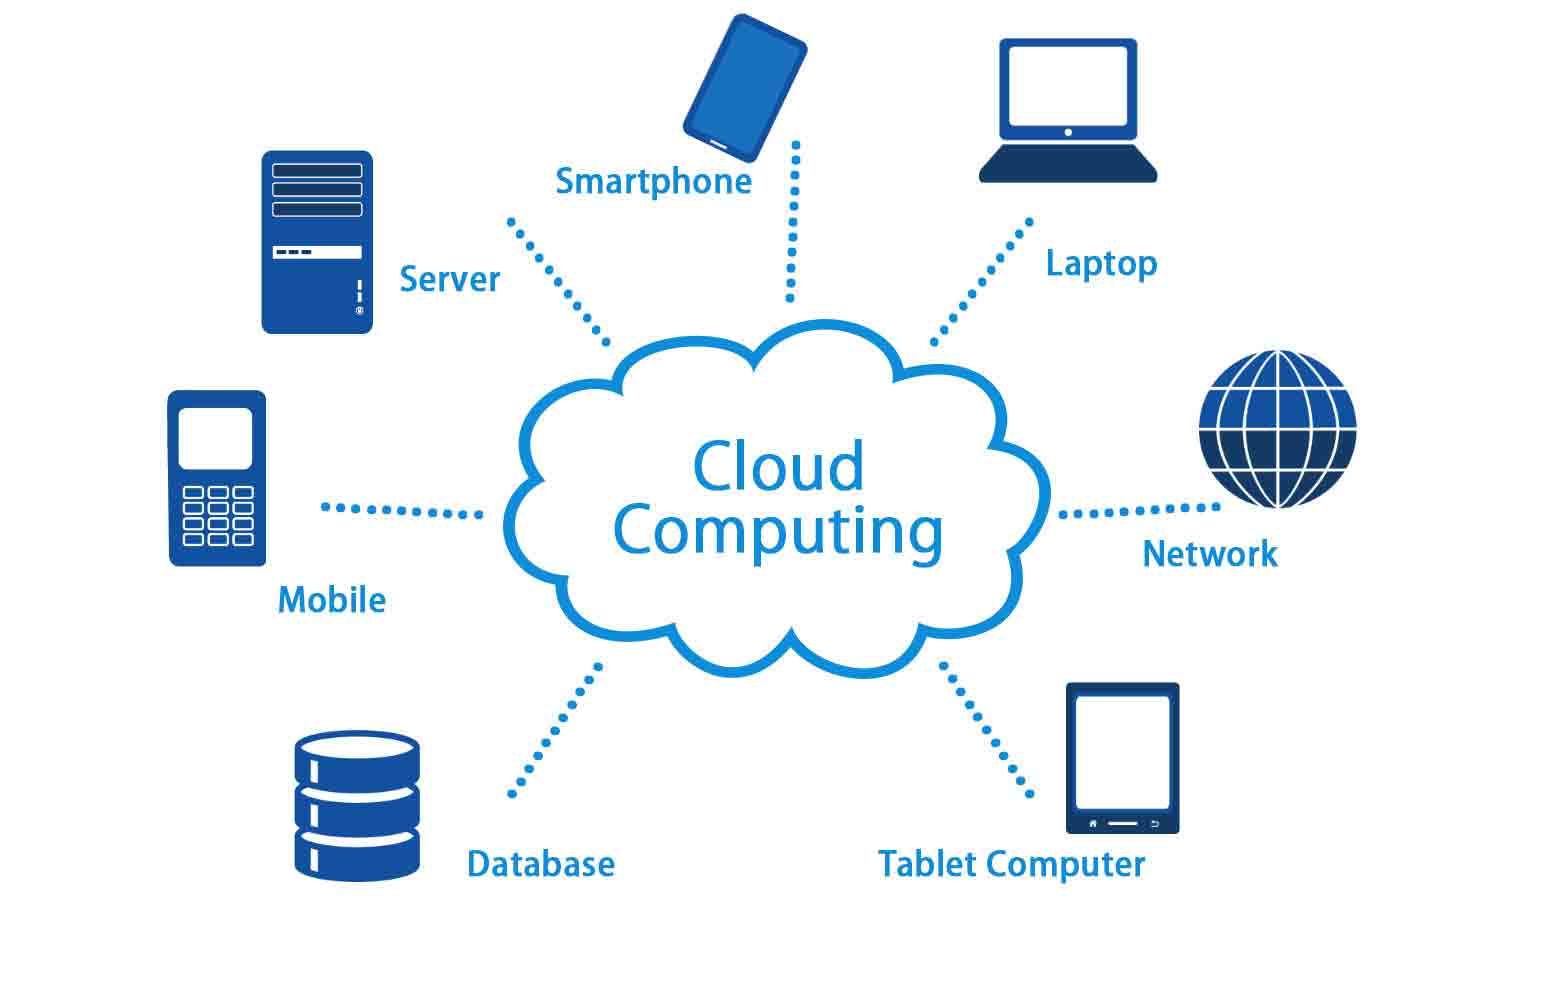 what is Cloud Computing exactly